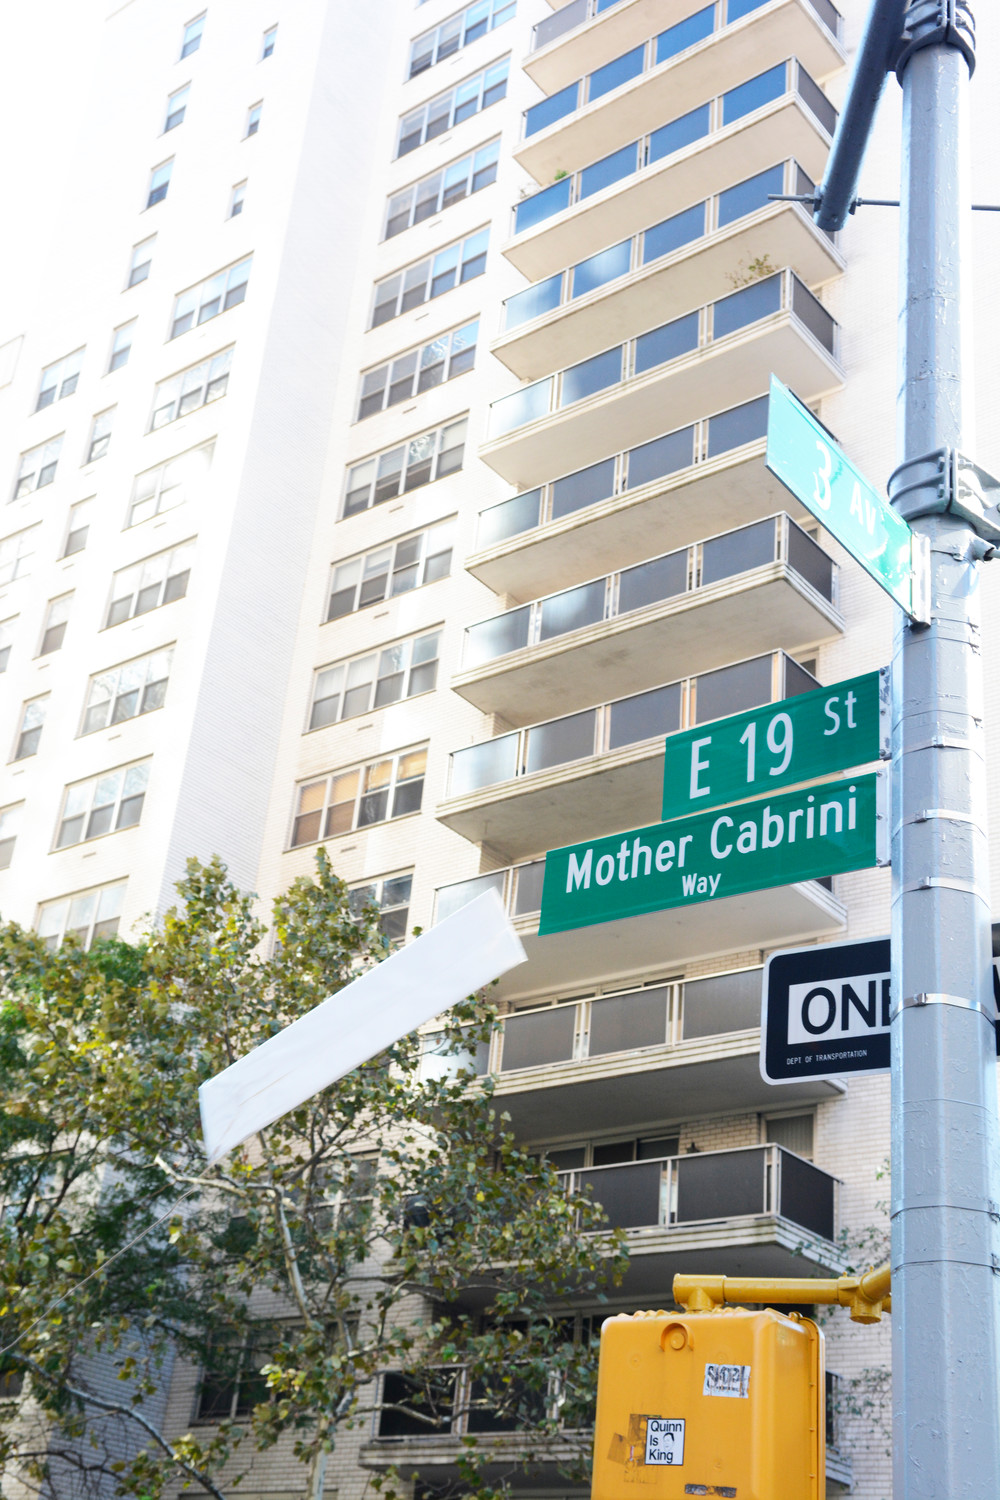 The cover falls from the new street sign. Light refreshments followed at Cabrini Apartments at 220 E. 19th St.